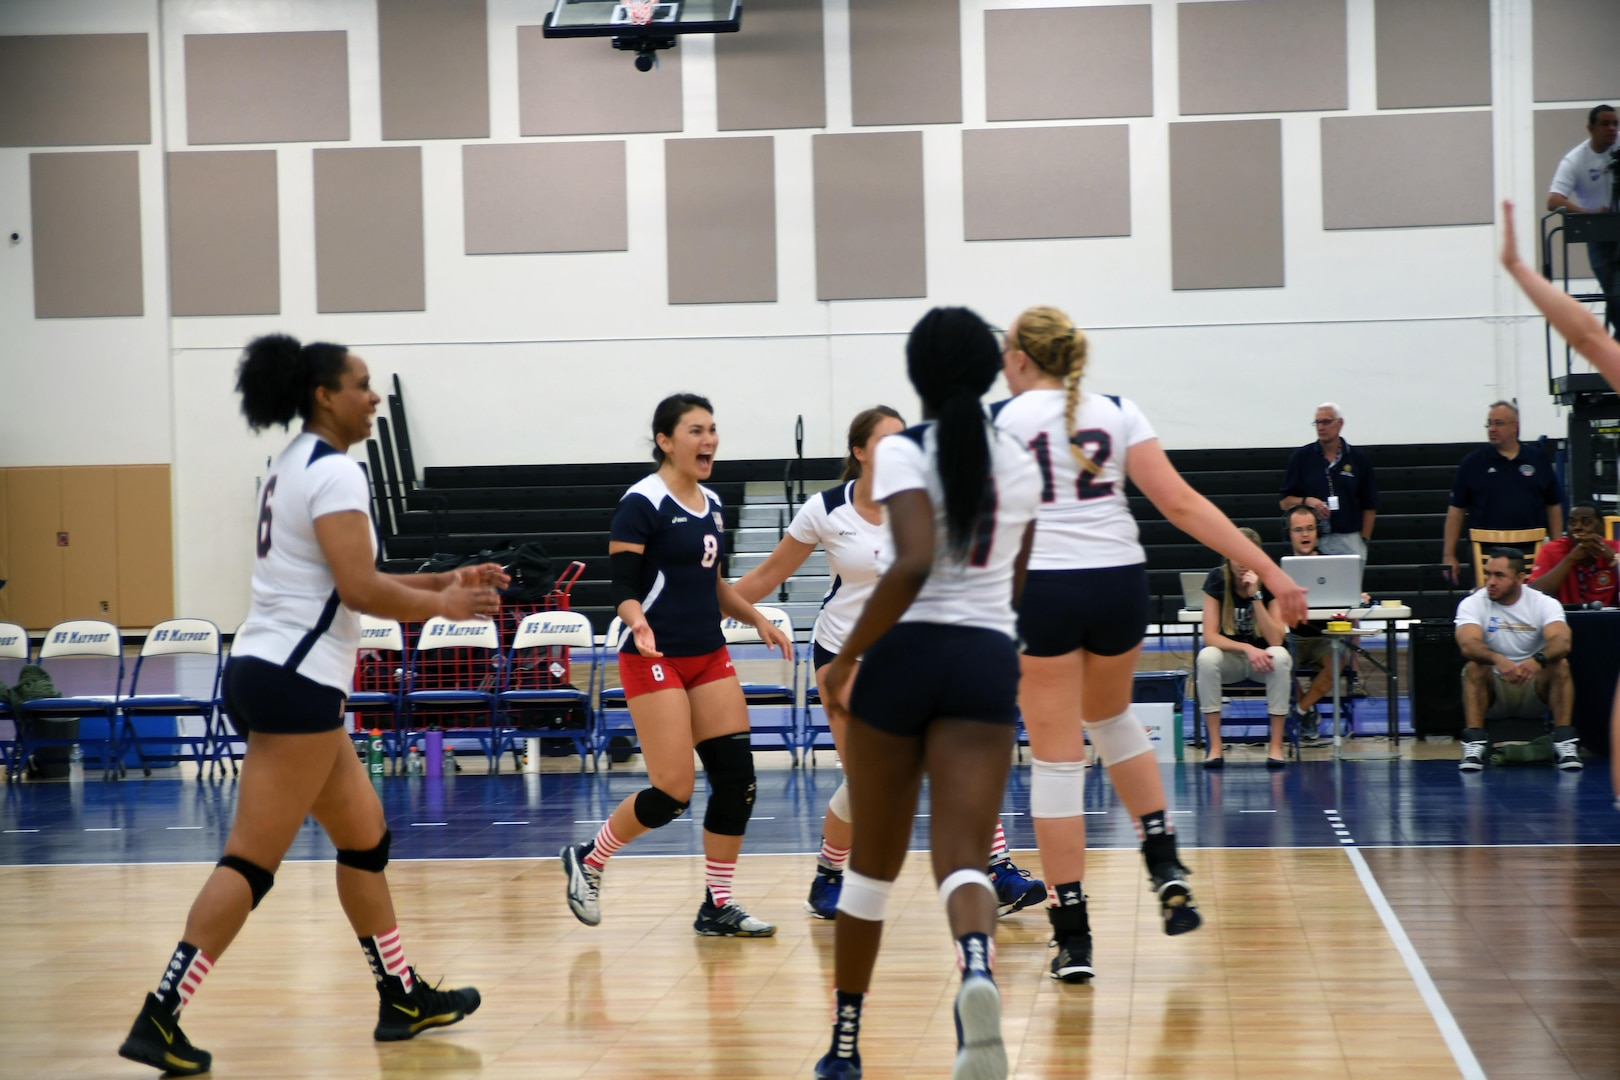 U.S. Armed Forces Women's Volleyball team celebrate a point against China in match 1 of the 18th Conseil International du Sport Militaire (CISM) World Women's Military Volleyball Championship at Naval Station Mayport, Florida on 4 June 2017. Mayport is hosting the CISM Championship from 2-11 June.  Finals are on 9 June.